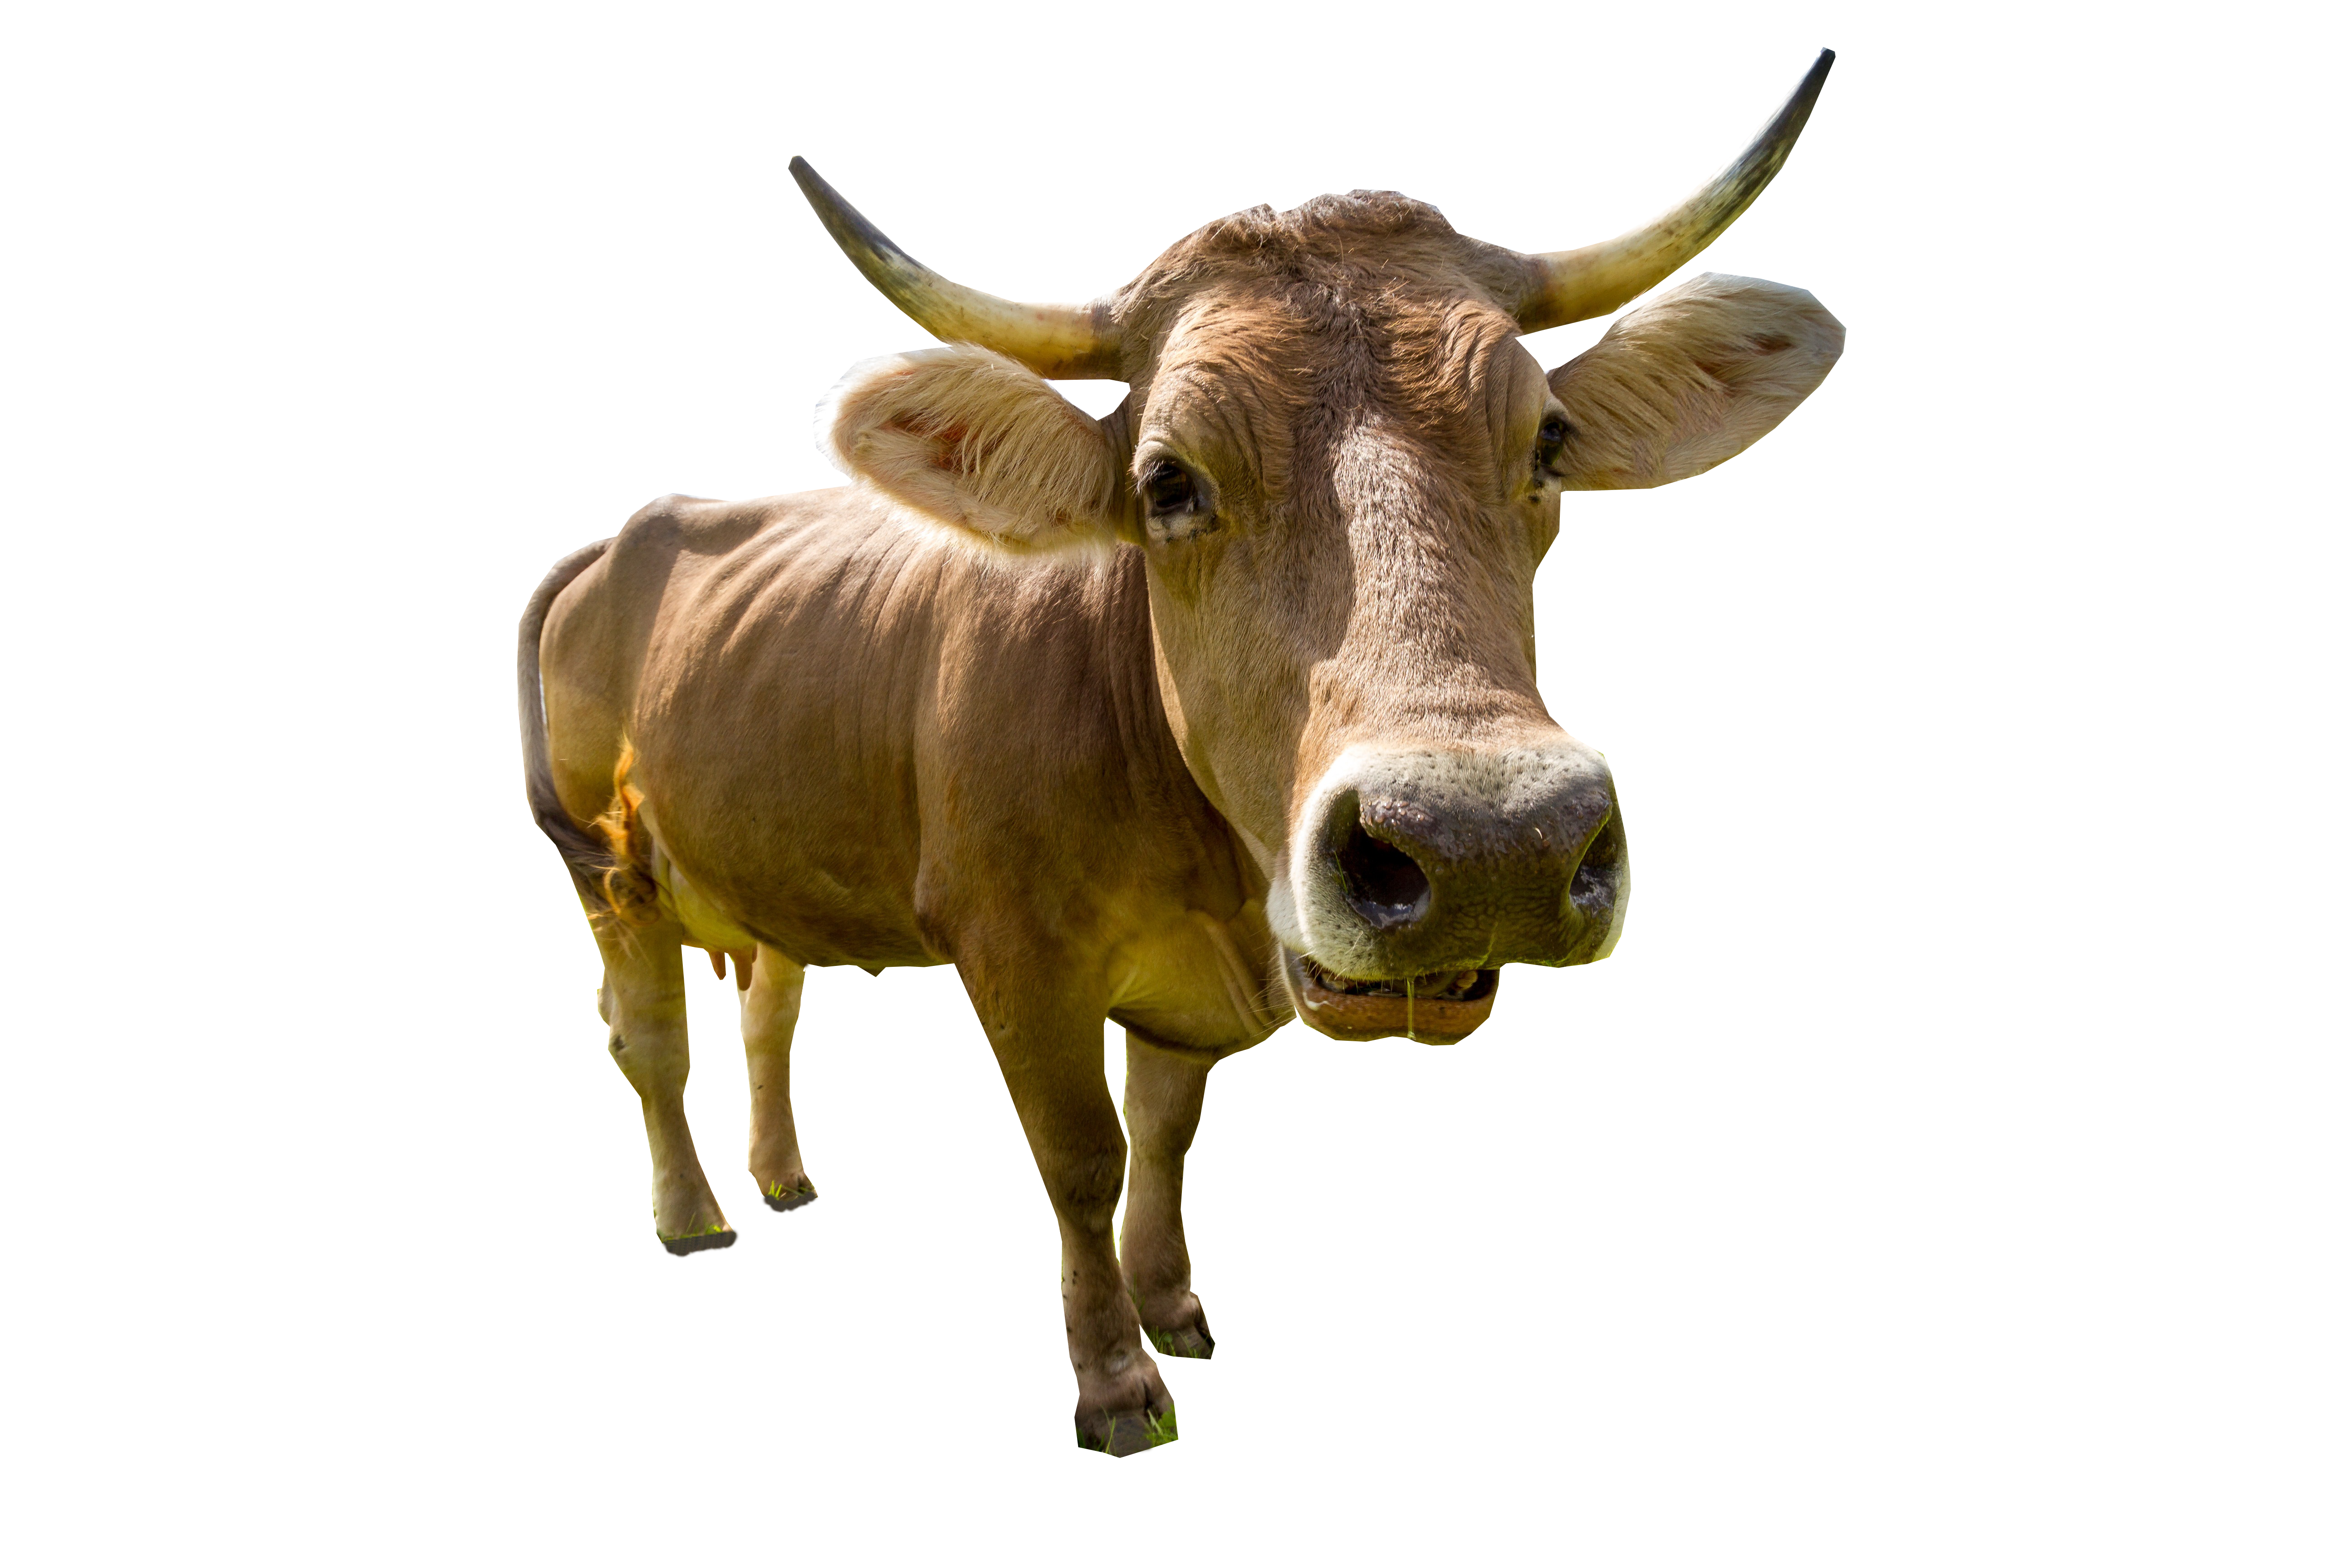 Male Cow Standing